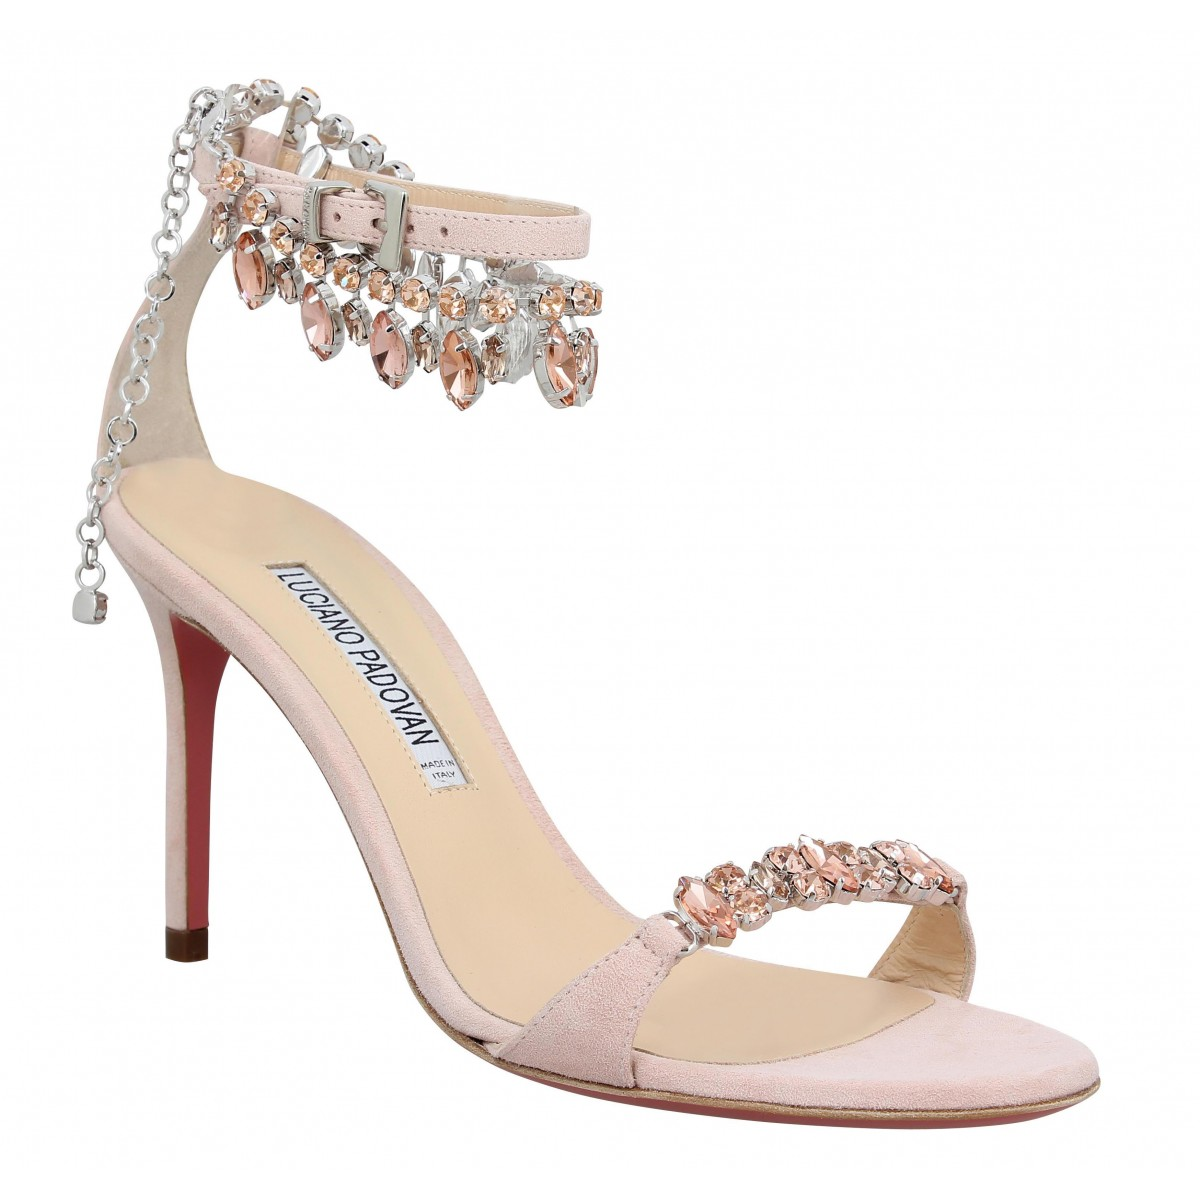 Sandales talons LUCIANO PADOVAN 255 velours Femme Rose